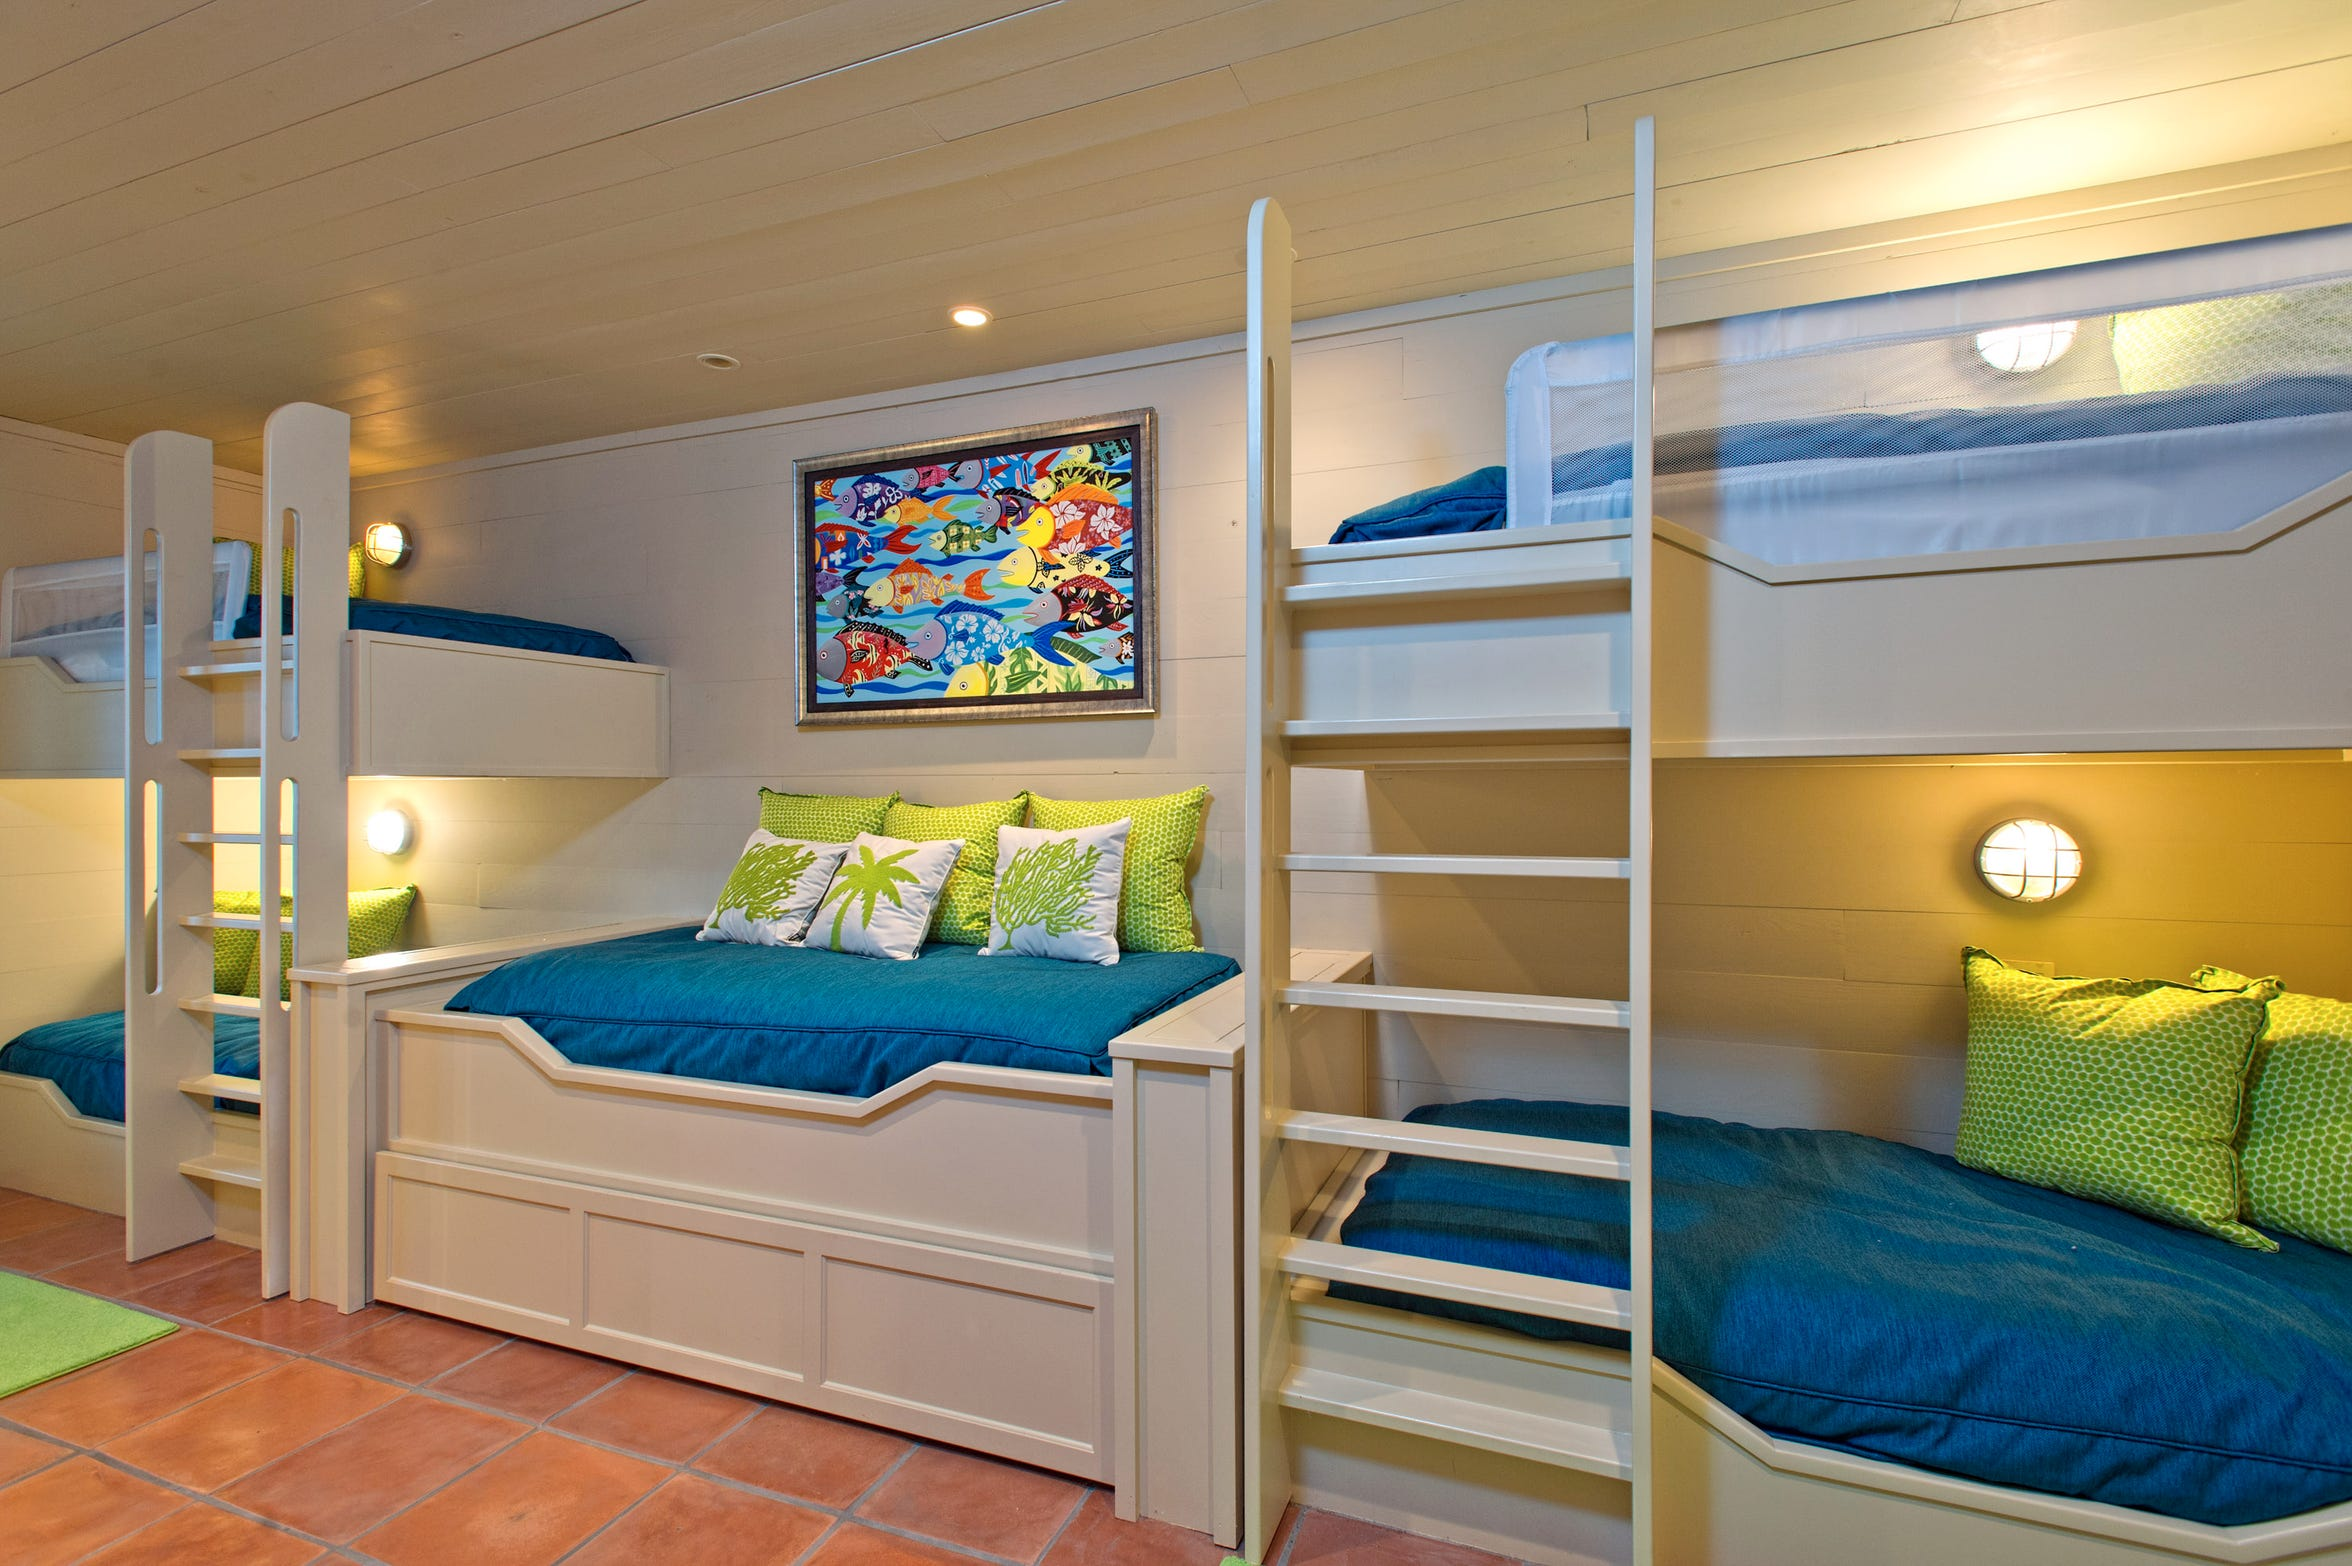 Kids, big and small will enjoy the first floor bunk room which sleeps 5 or more